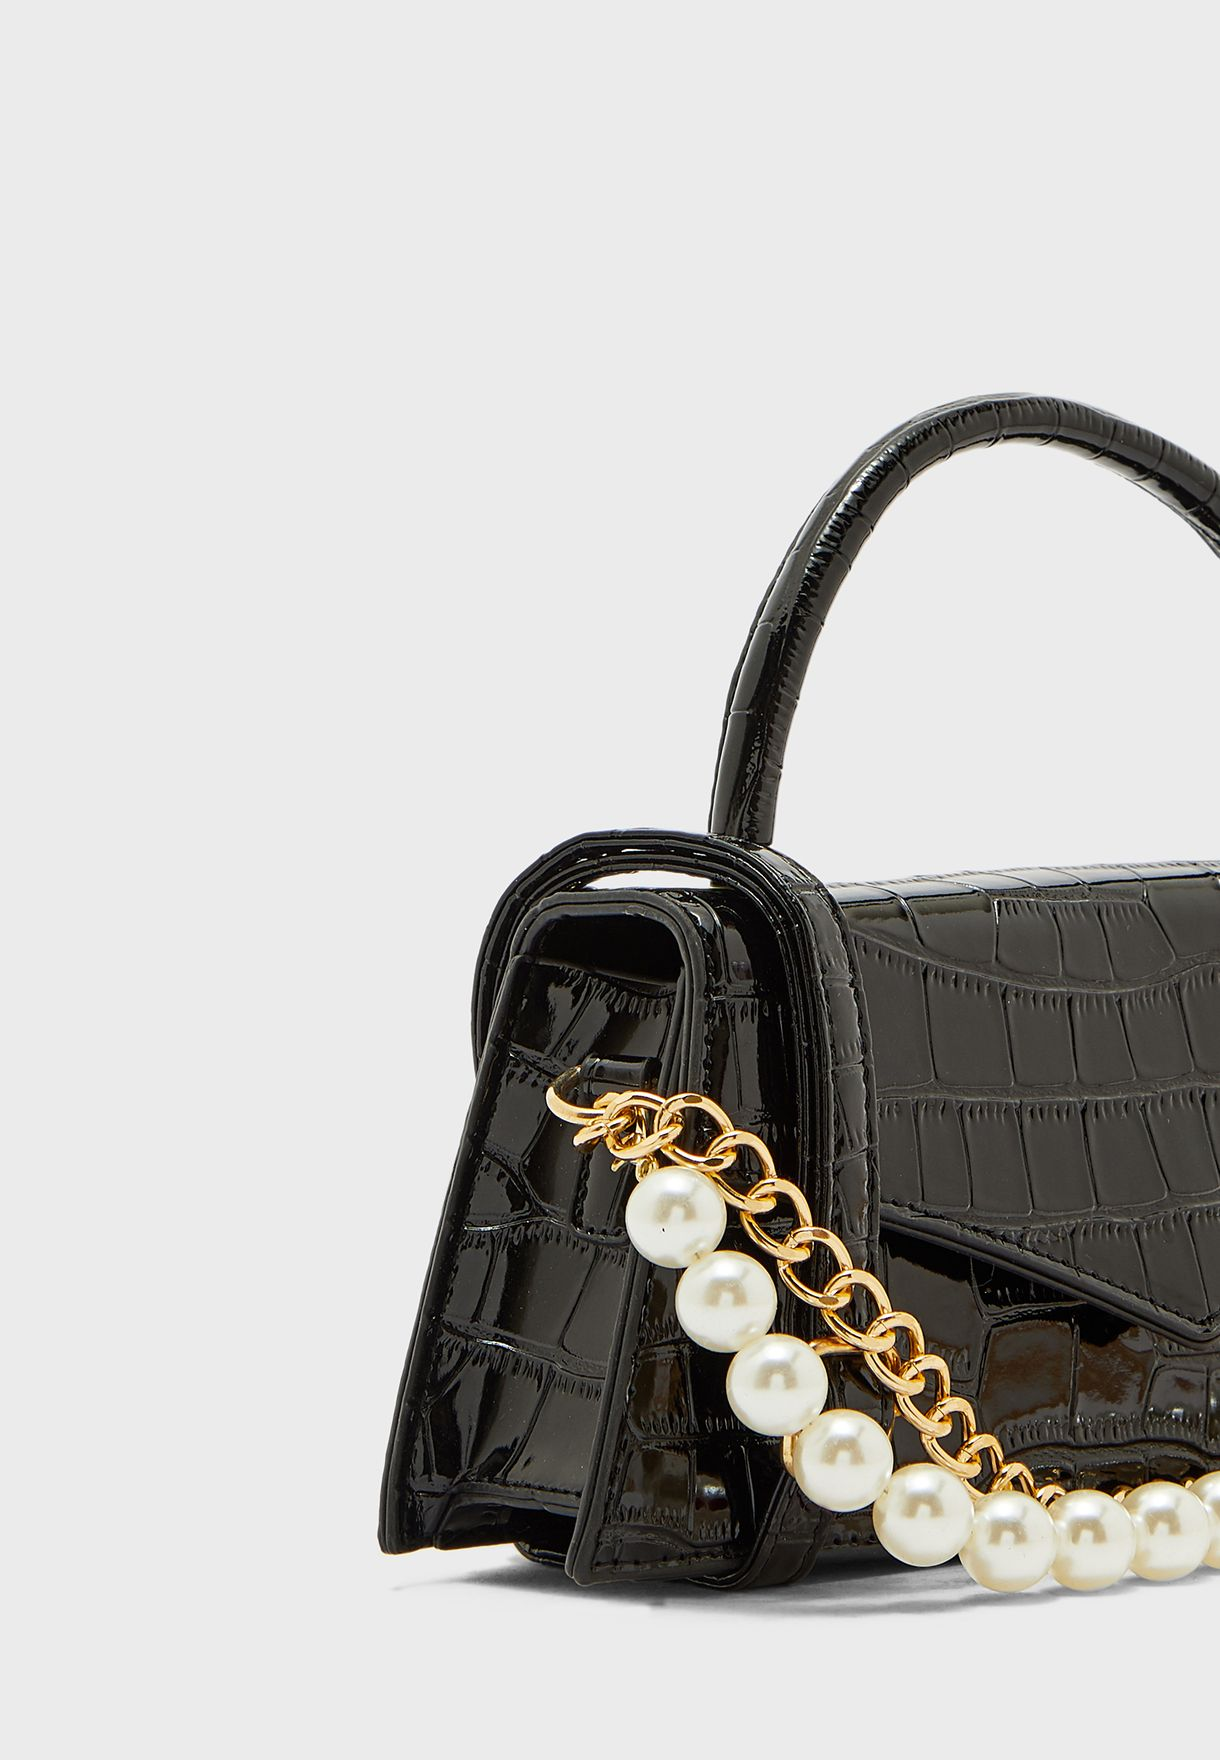 Croc Handbag with Pearl and Chain